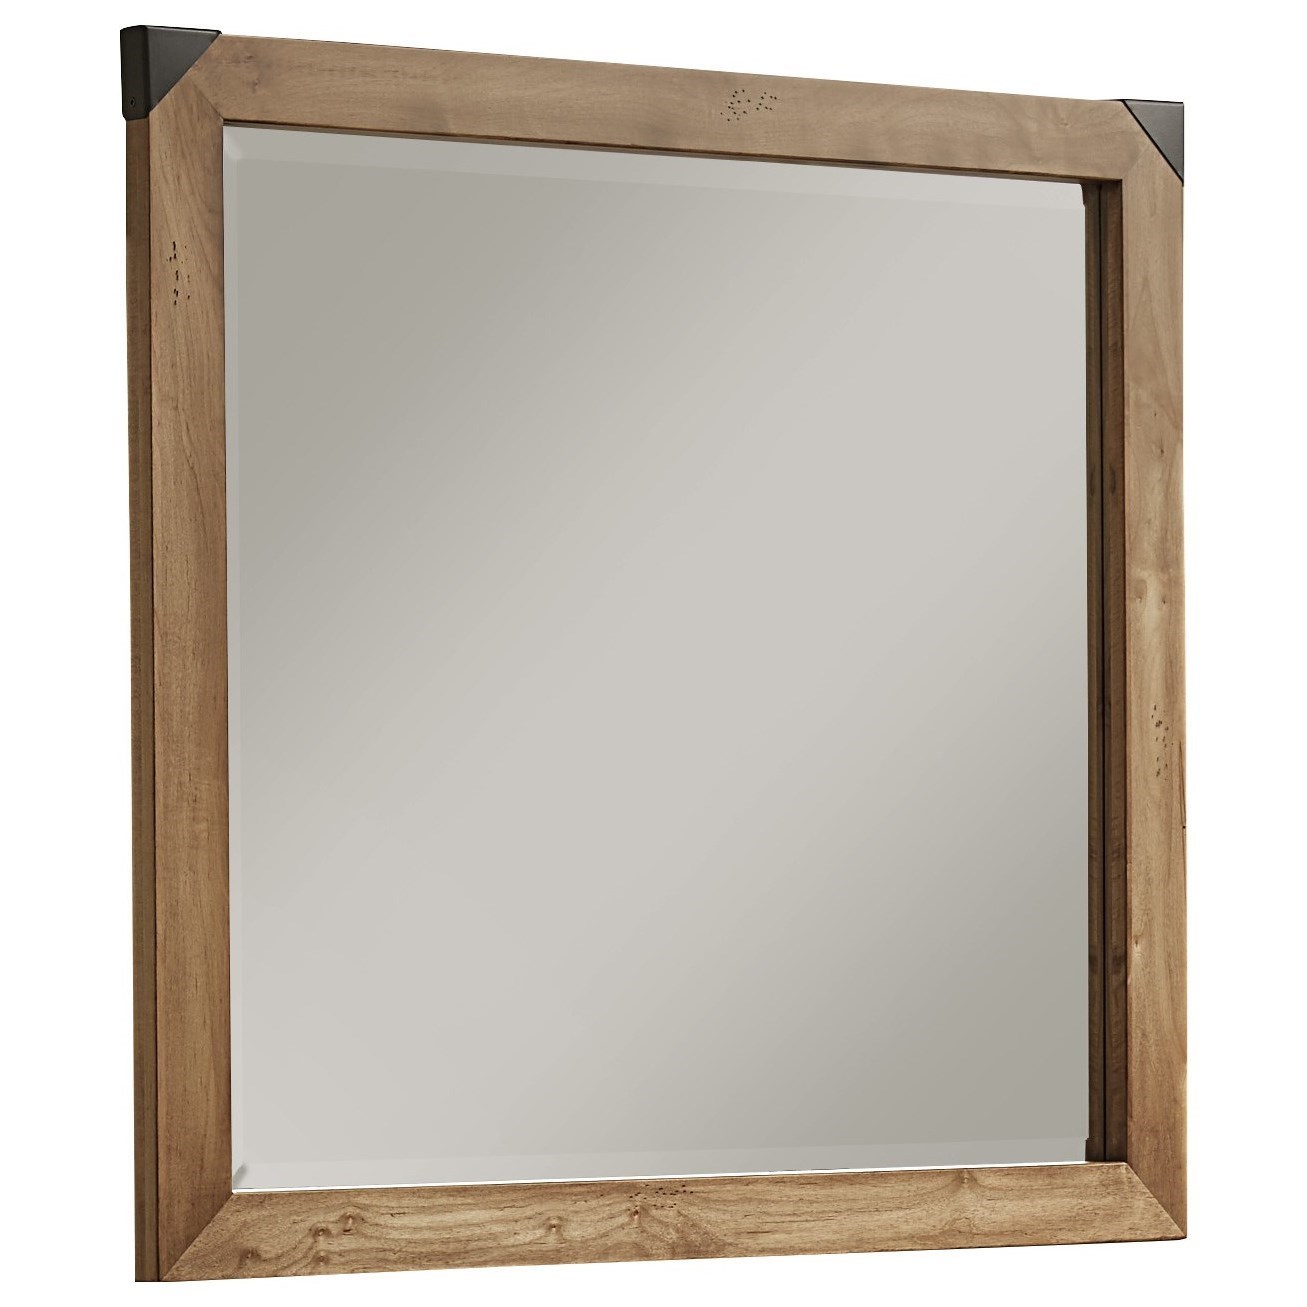 Sedgwick Landscape Mirror by Artisan & Post at Northeast Factory Direct